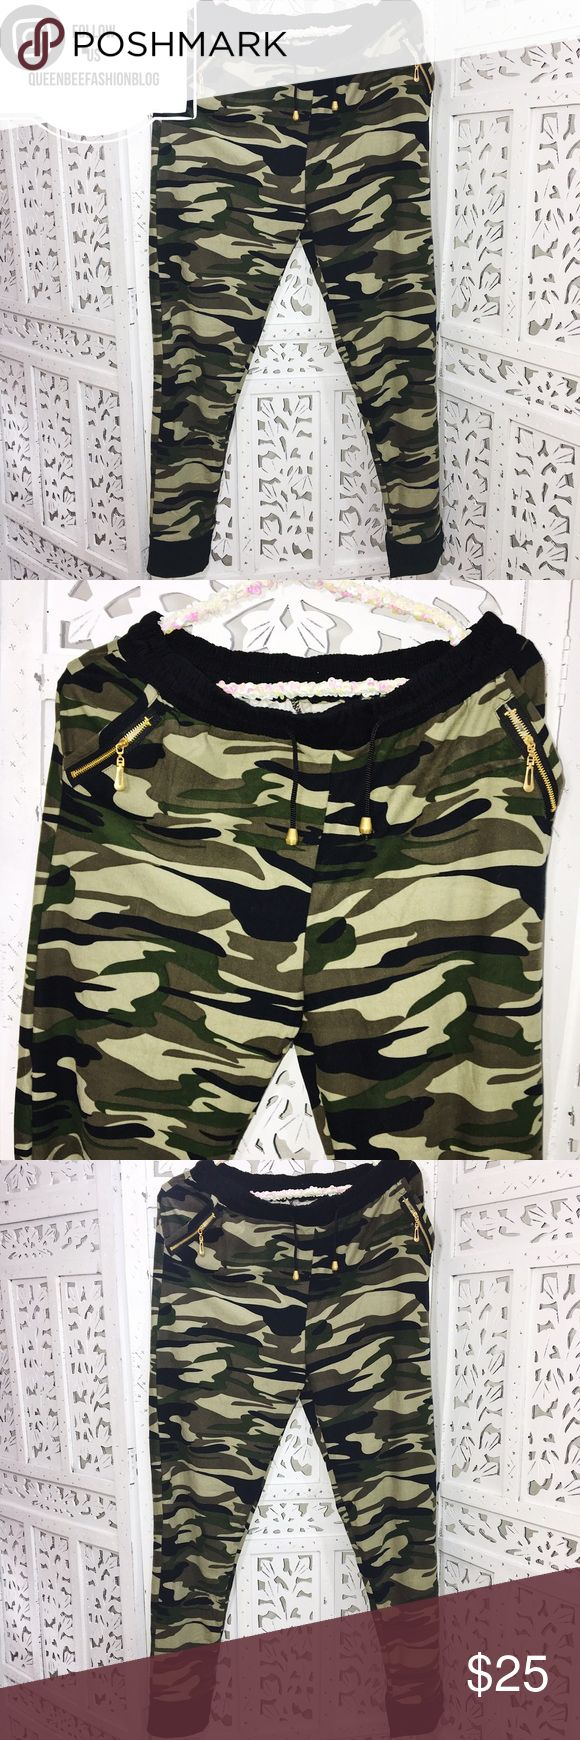 """ARMY GREEN MILITARY SKINNY JOGGERS PANTS So cute! Didn't get to use these. NEW without tags. They are so comfy, stretchy, and lightweight. One size! I usually wear a Medium and these were perfect.  Waist: 32"""", rise: 10"""", hips: 37"""", inseam: 28"""".     """"Add to bundle"""" to add more items from my closet or """"Buy"""" to checkout now.  Get to know me! Showing you how to style your looks at www.Queenbeefashionblog.com SUBSCRIBE.    Let's be friends! Follow me on Instagram @queenbeefashionblog Queen Bee…"""